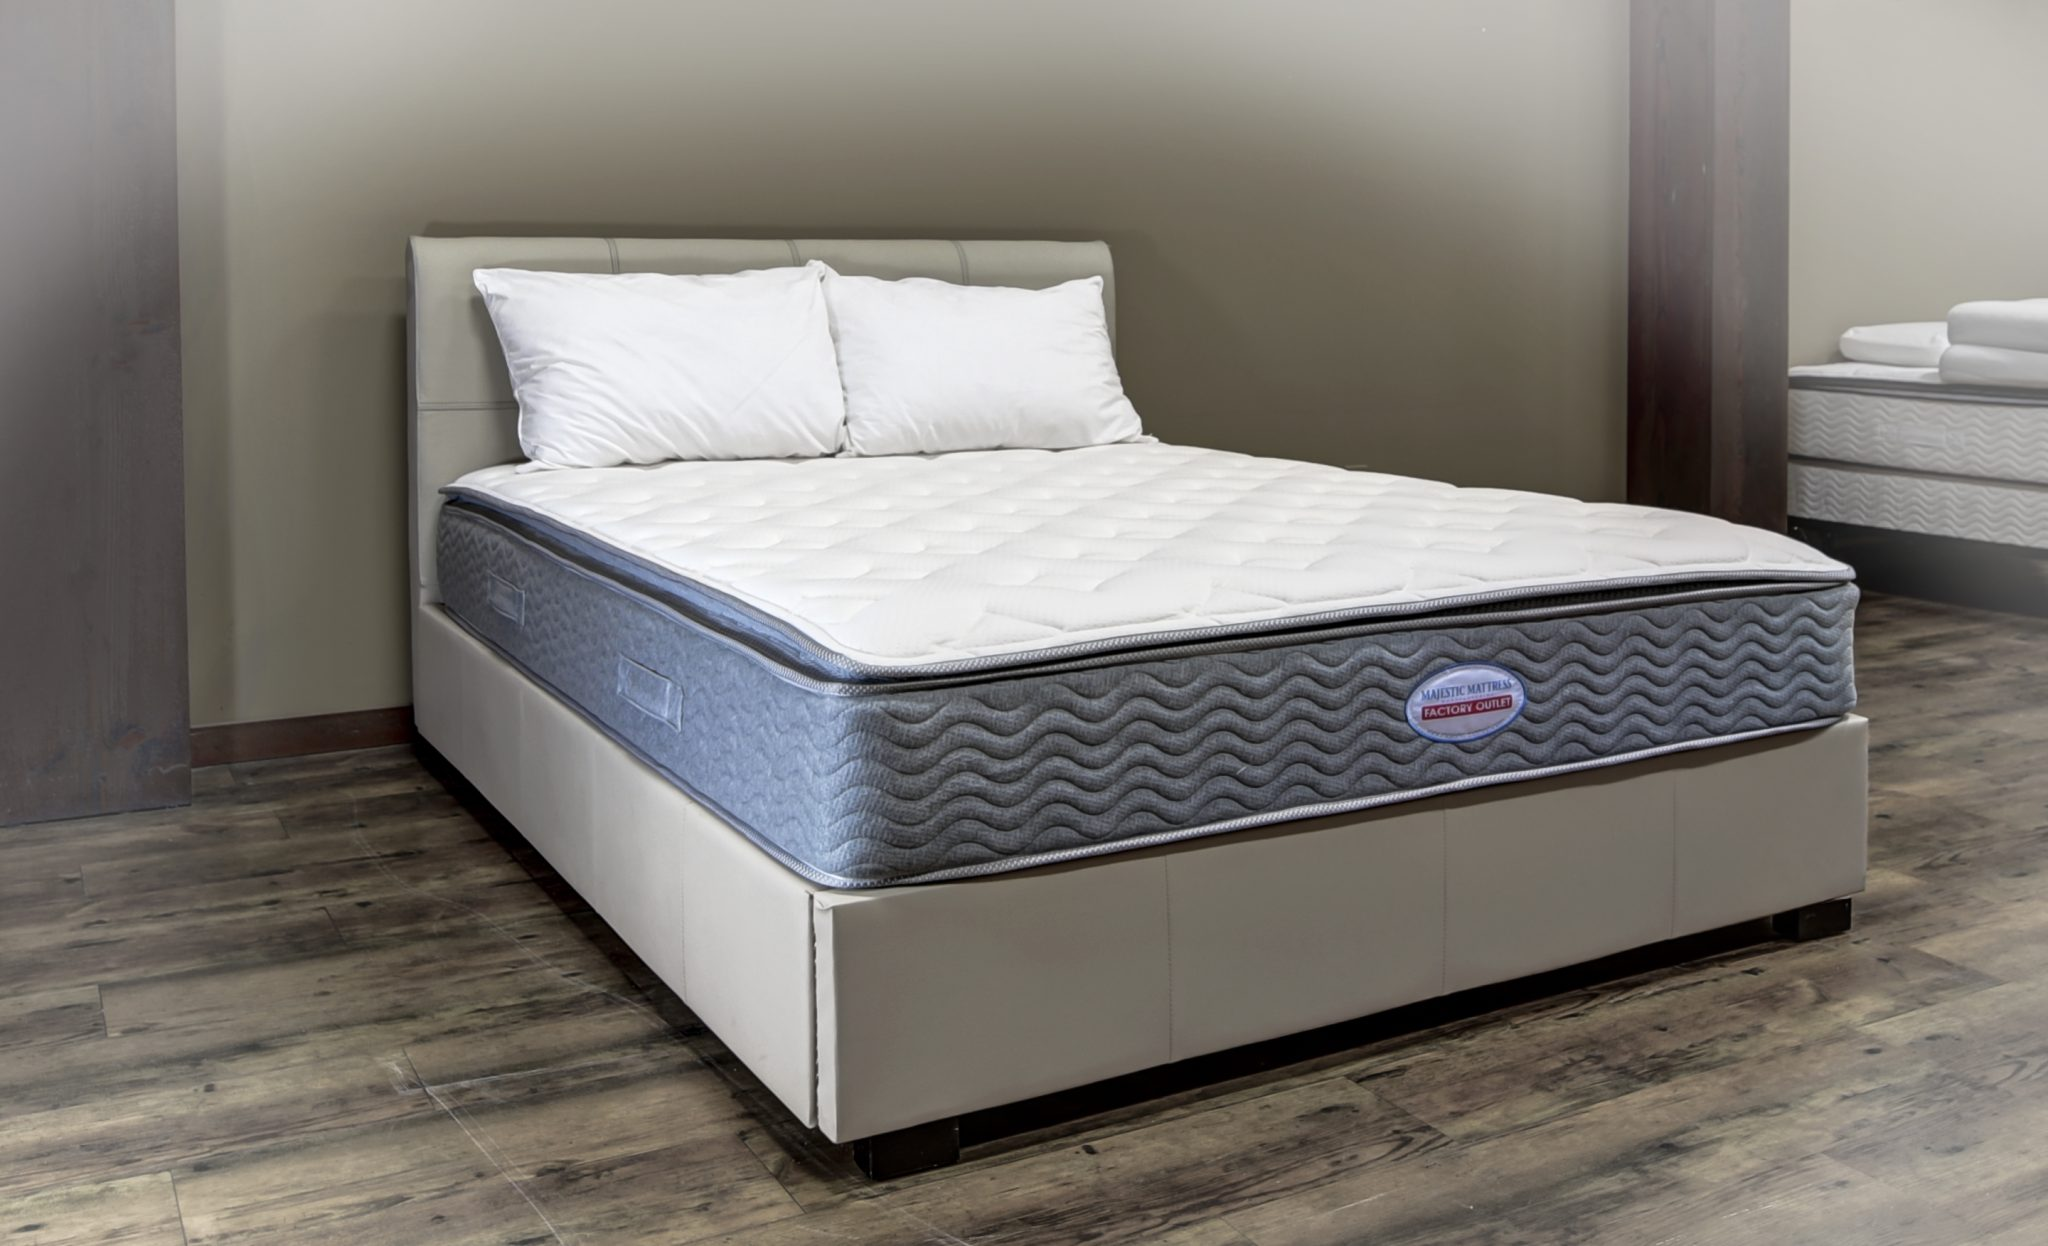 Best pillow top majestic mattress for Best store to buy a mattress